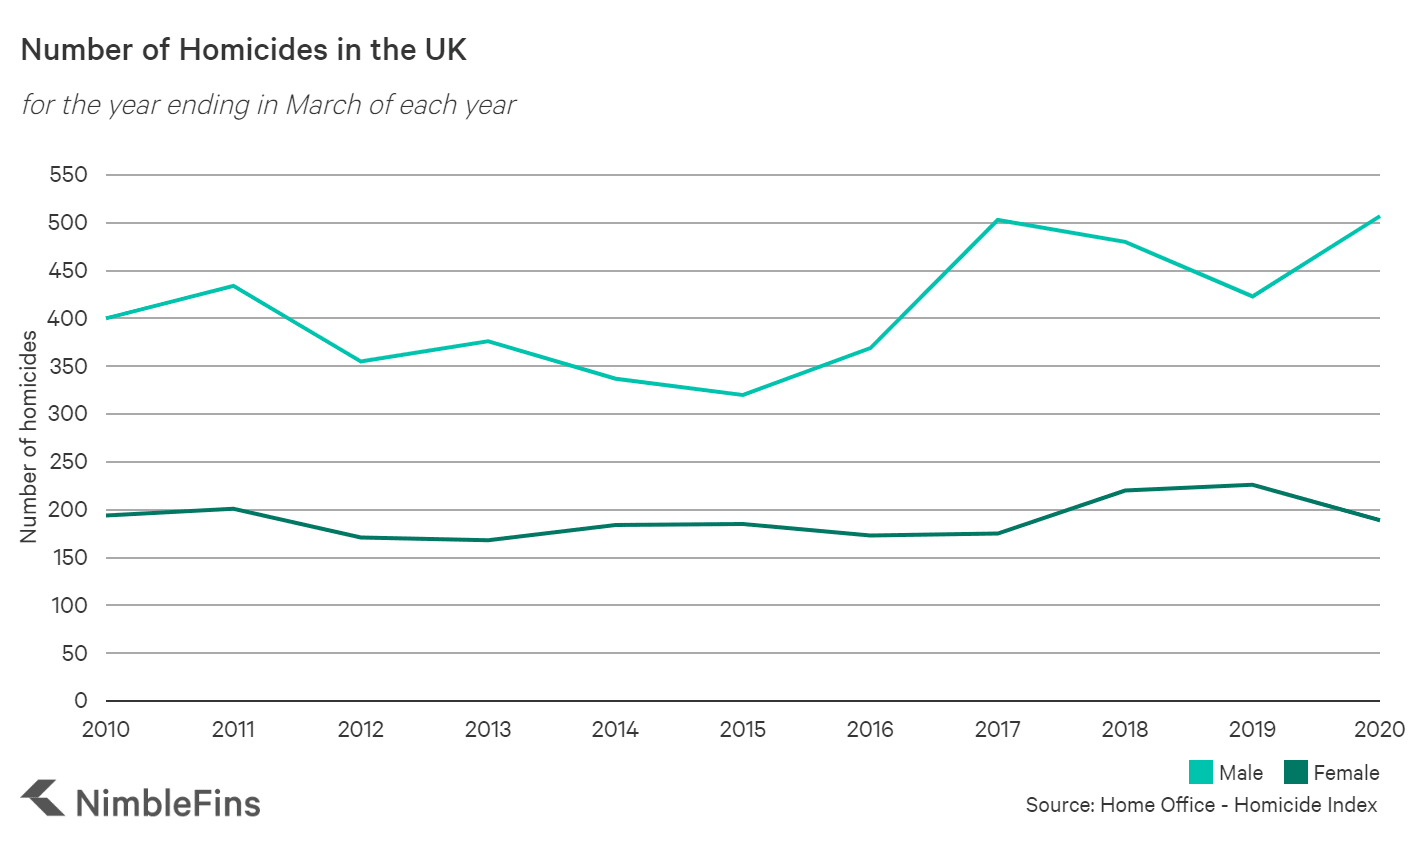 Number of homicides of men and women in the UK